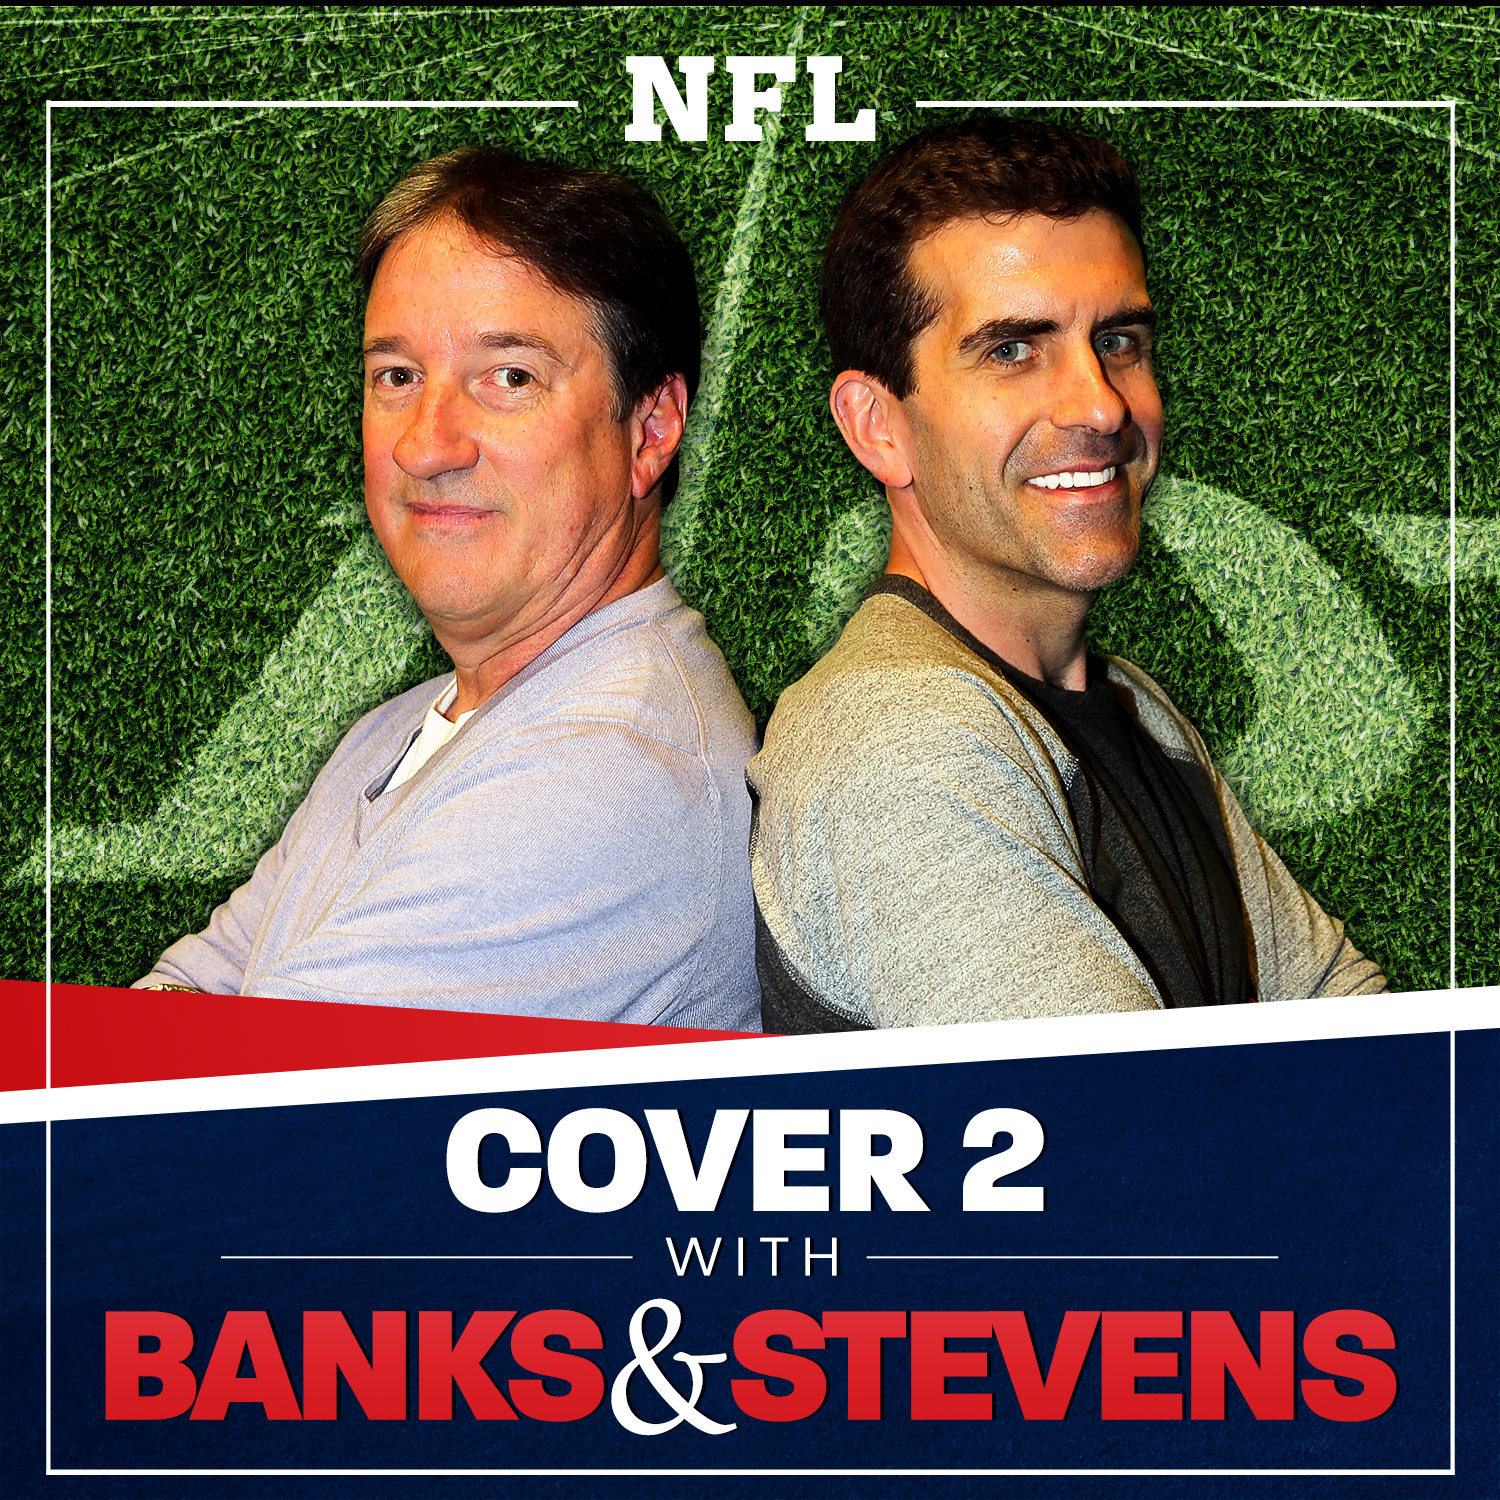 a2a52d2e5 Cover 2 with Banks   Stevens by New England Patriots on Apple ...